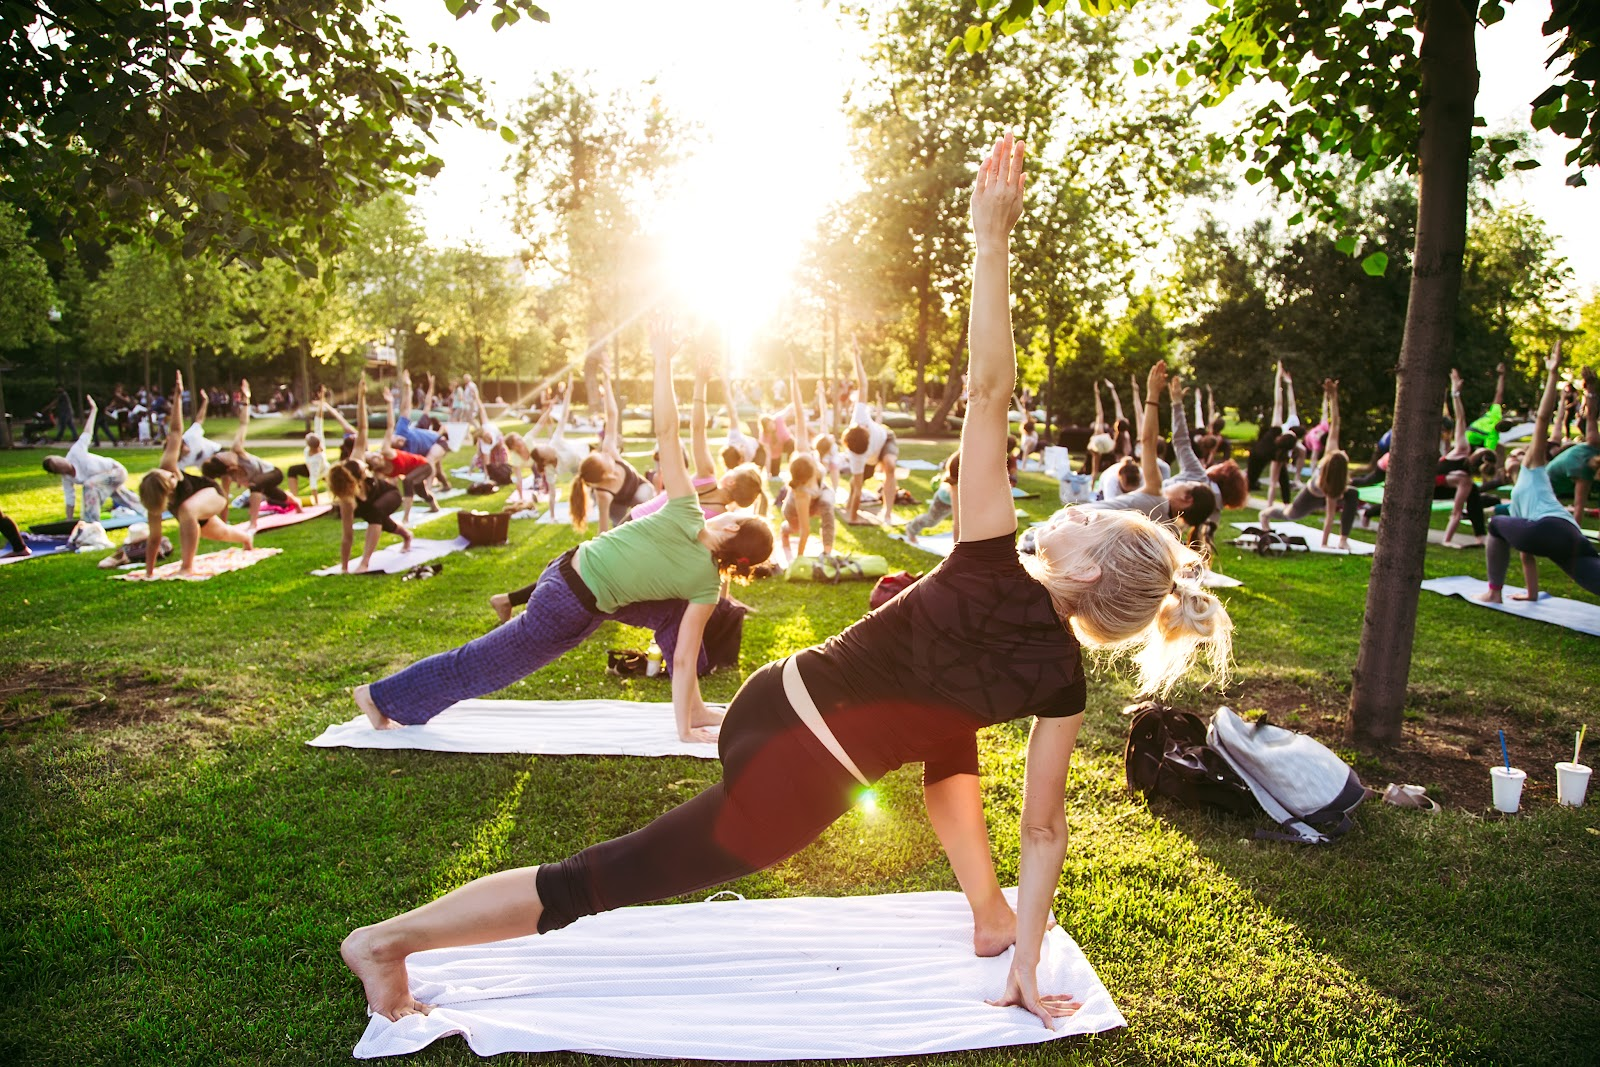 People outside in nature doing yoga, dealing with PTSD in a healthy way